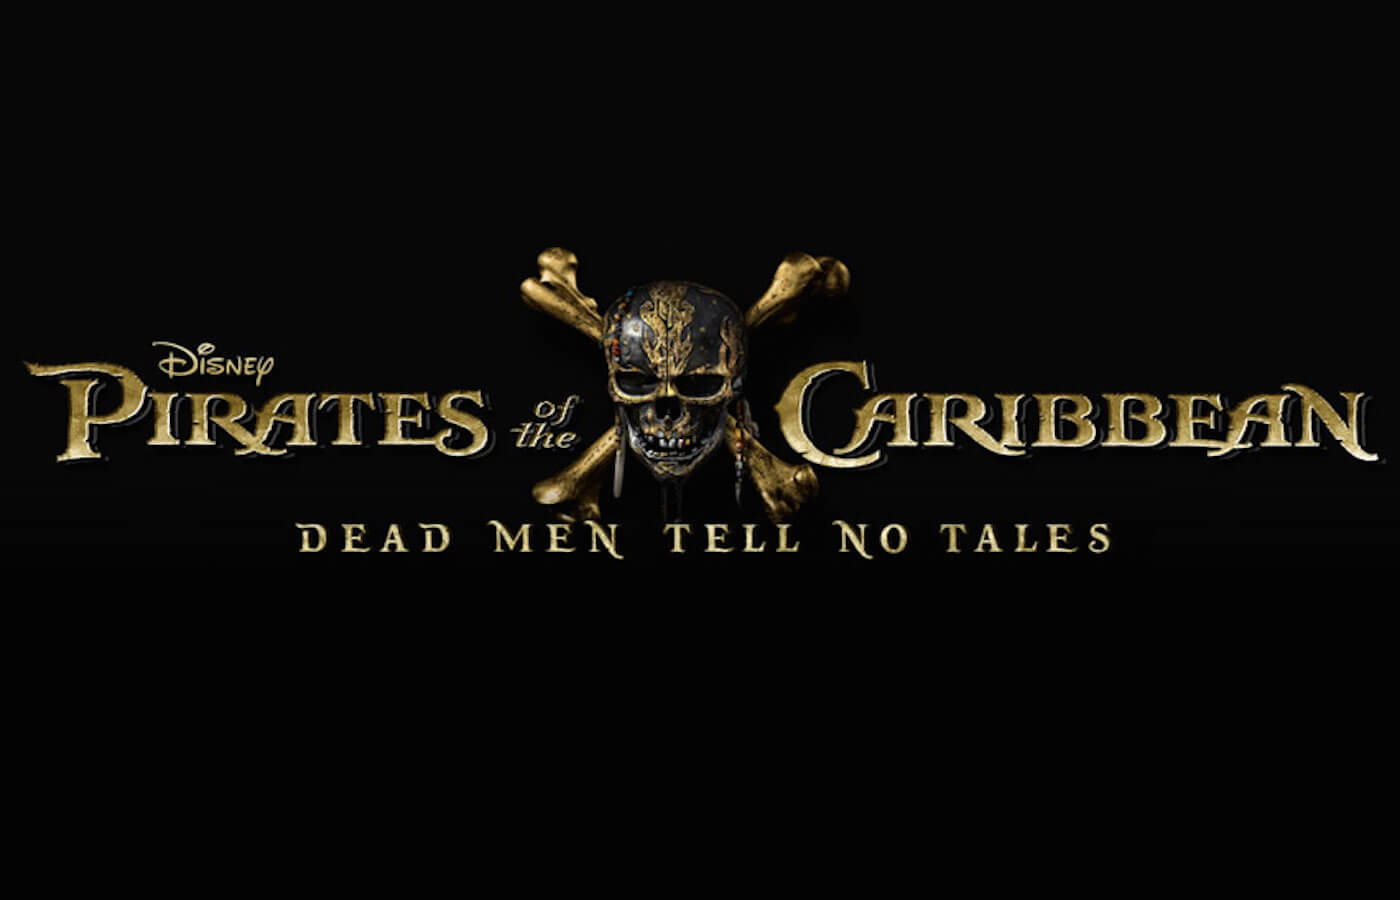 Pirates of the caribbean 5 logo